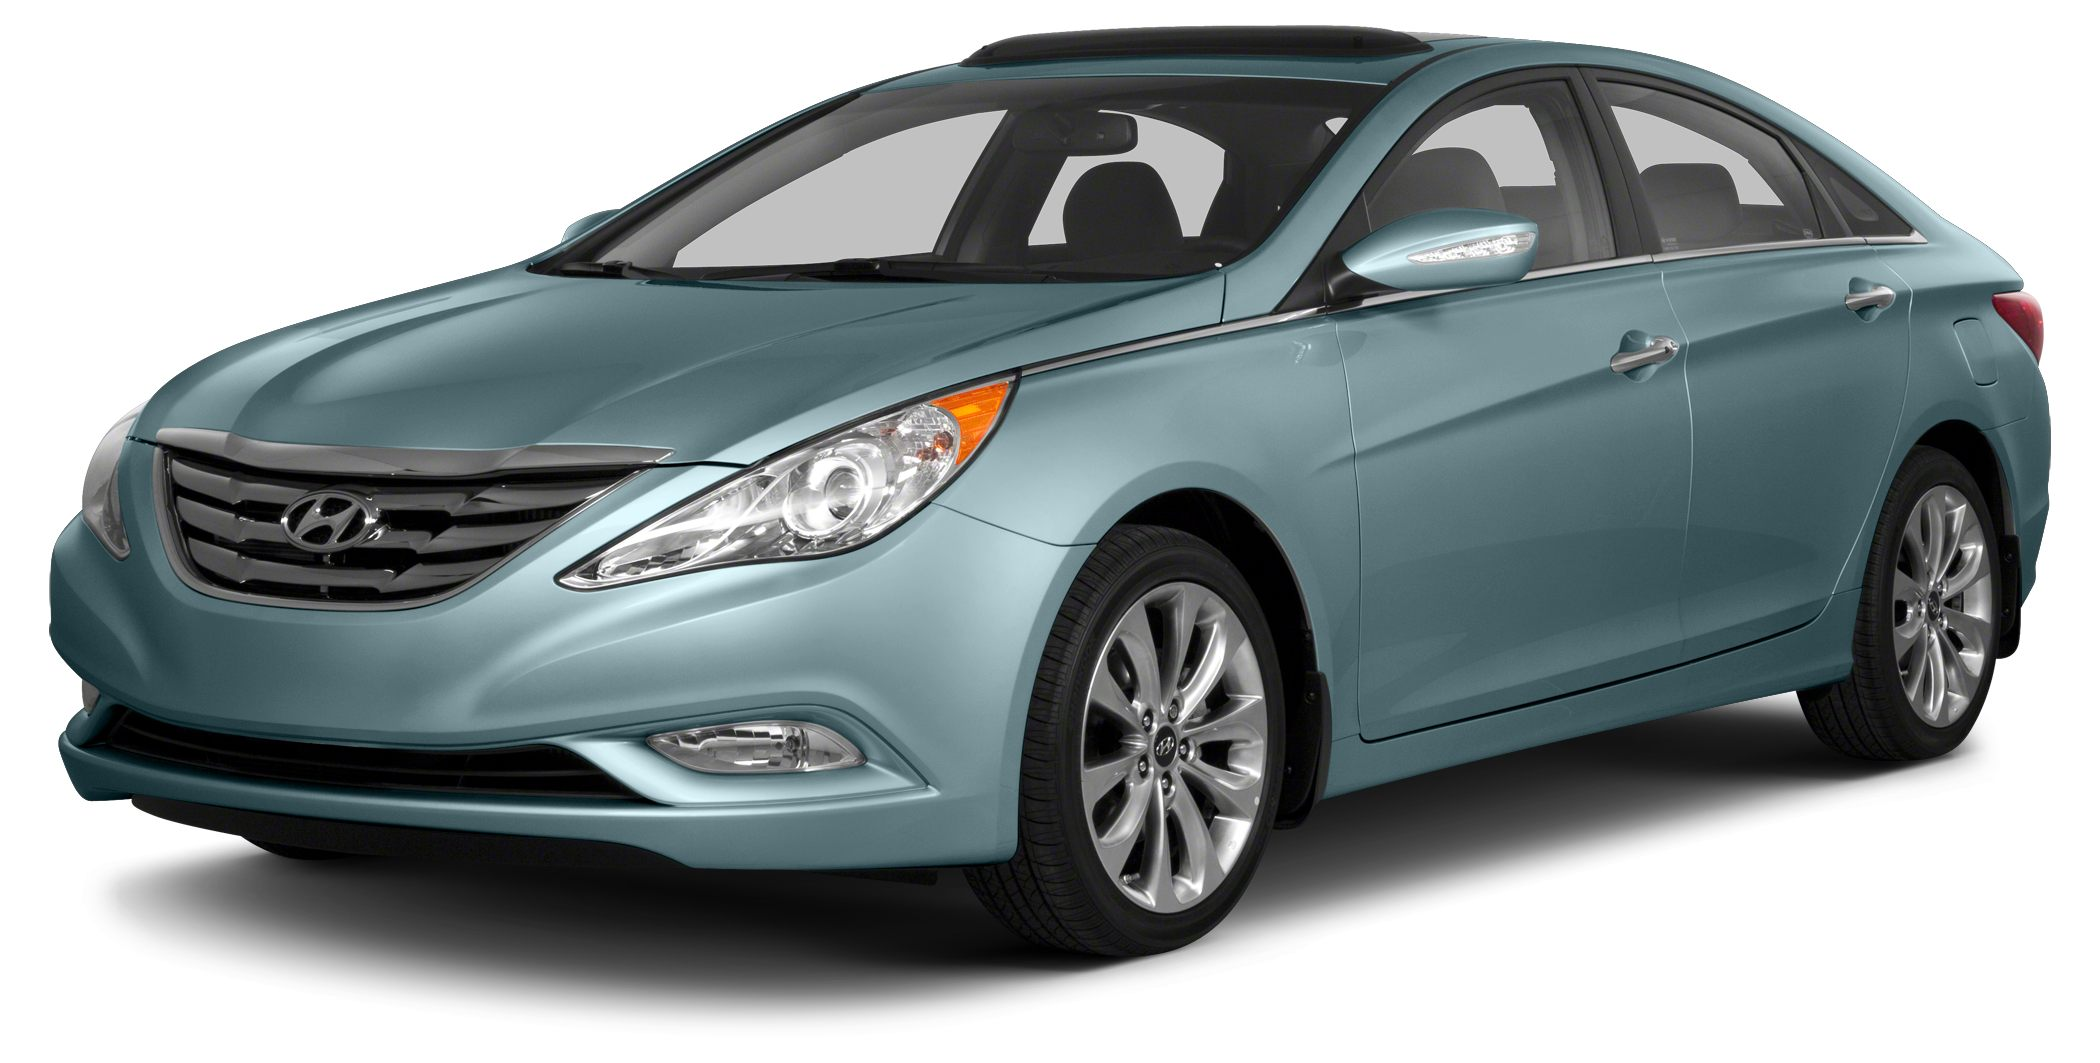 2013 Hyundai Sonata GLS Purchased serviced and traded here Take a look at the Perfect One-Owner